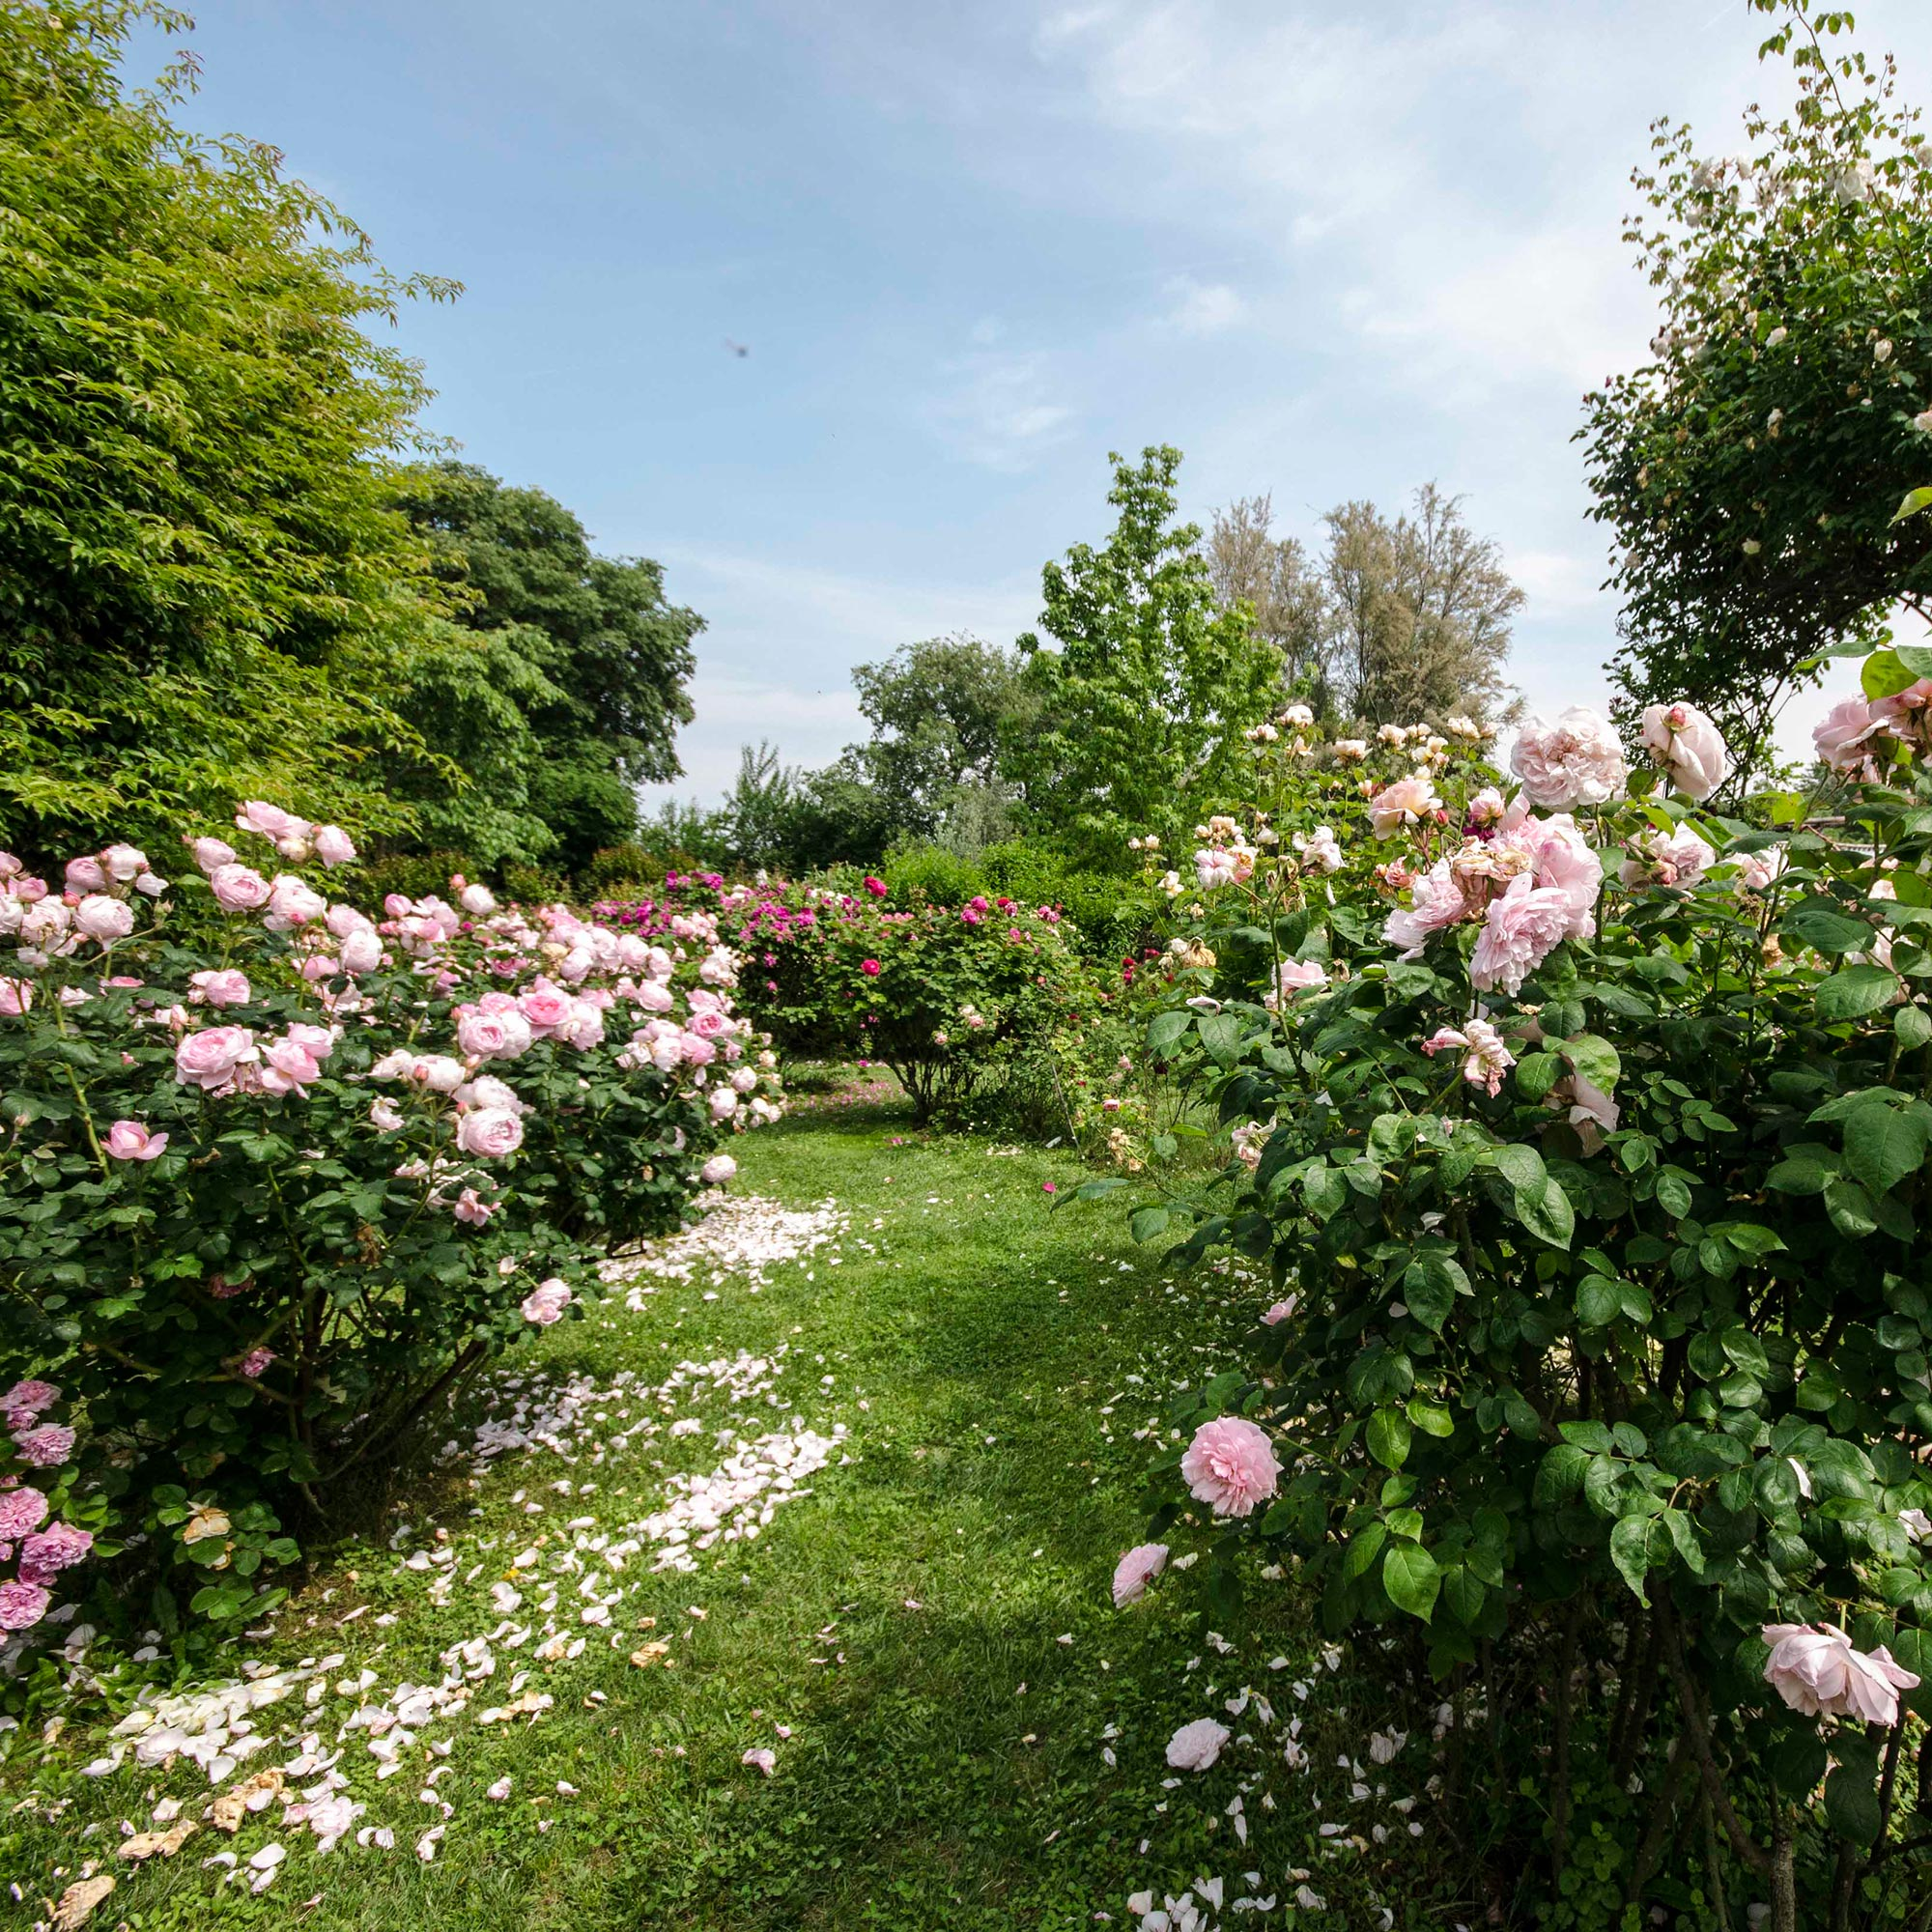 Quistini Castle | Roses labyrinth, bioenergetic and secret garden in on